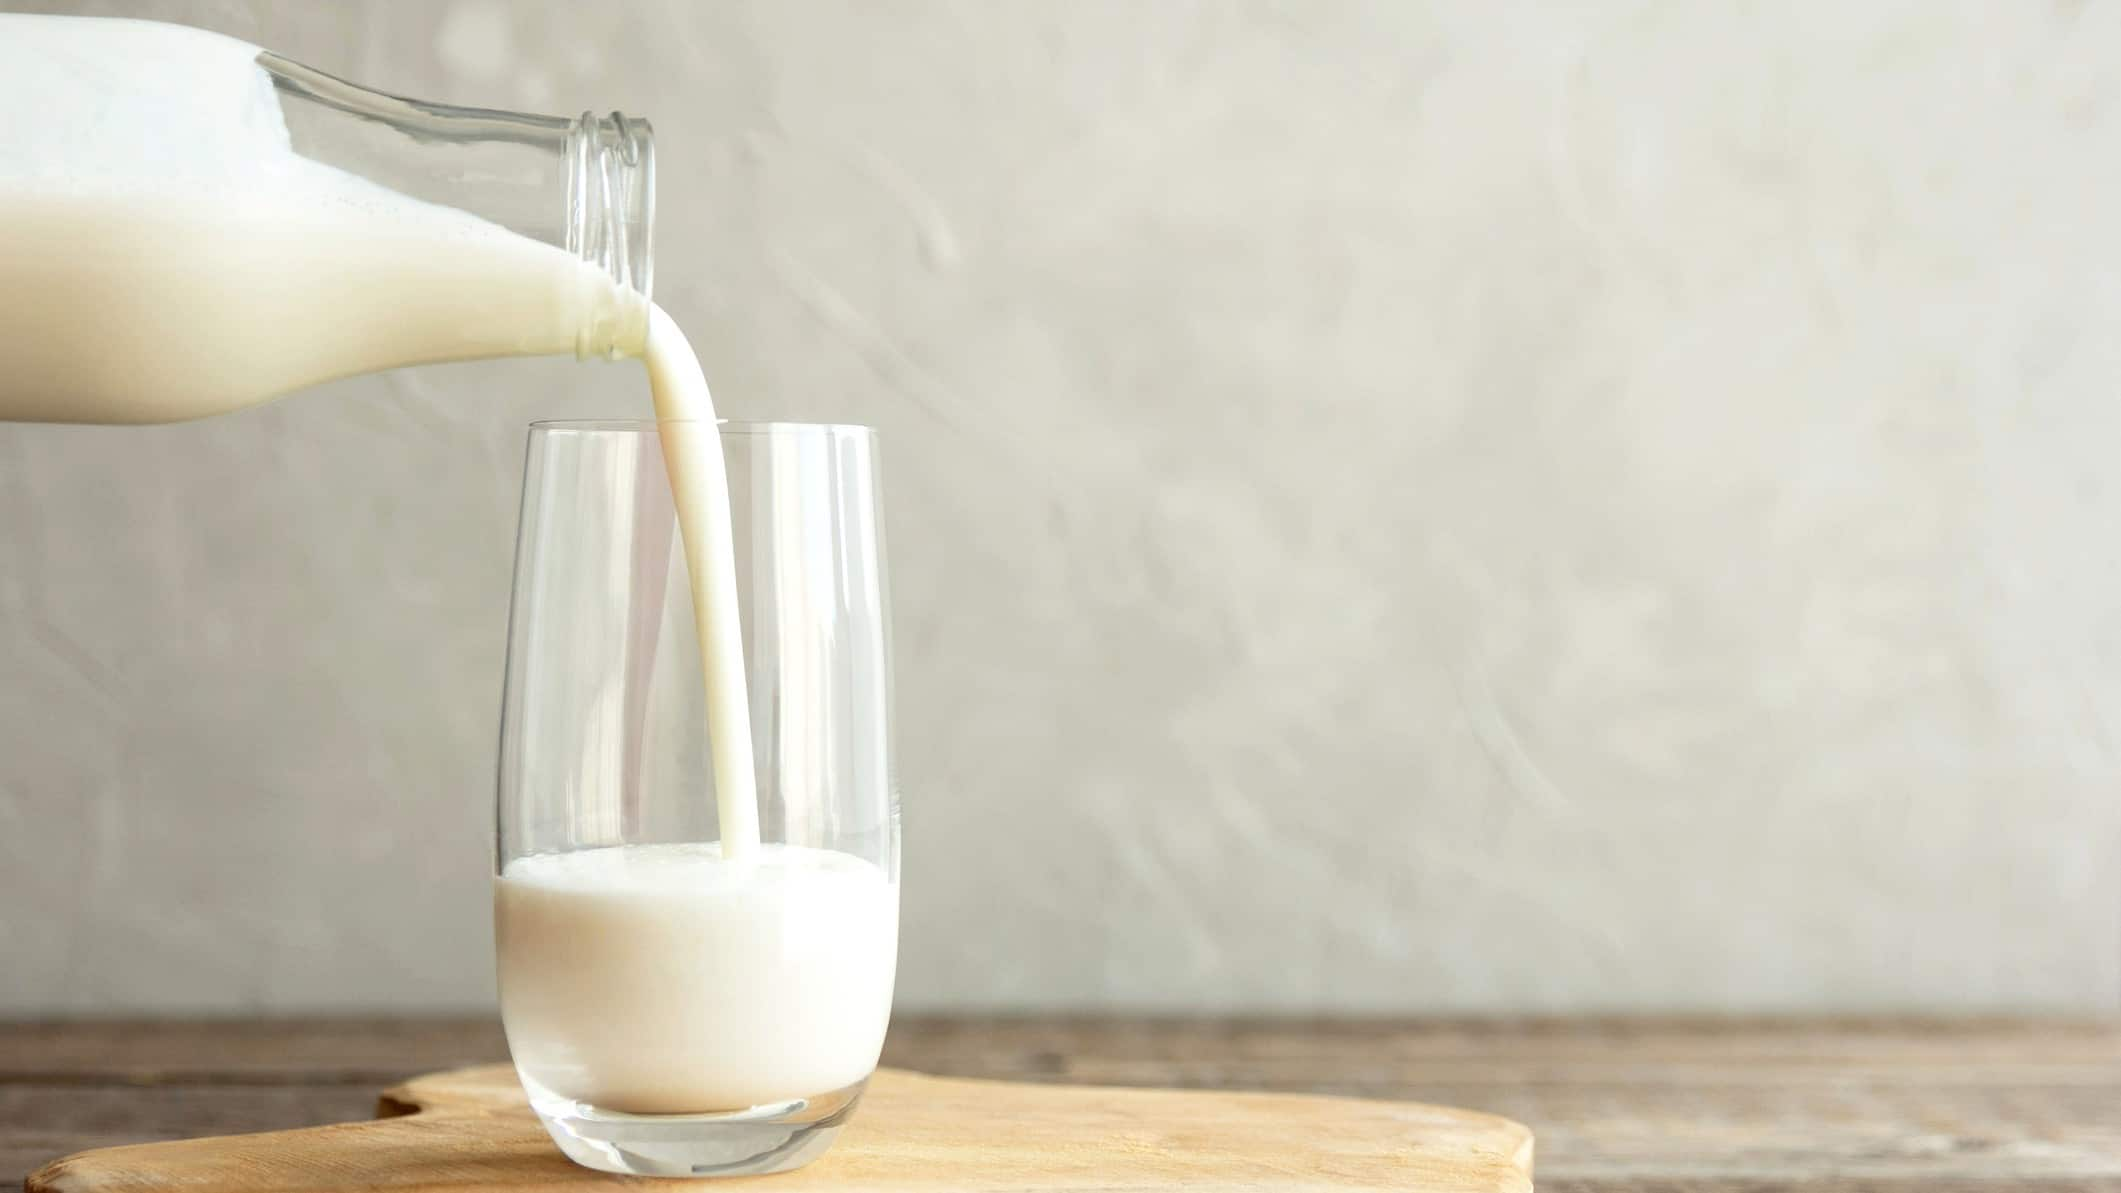 pouring glass of milk from glass milk bottle